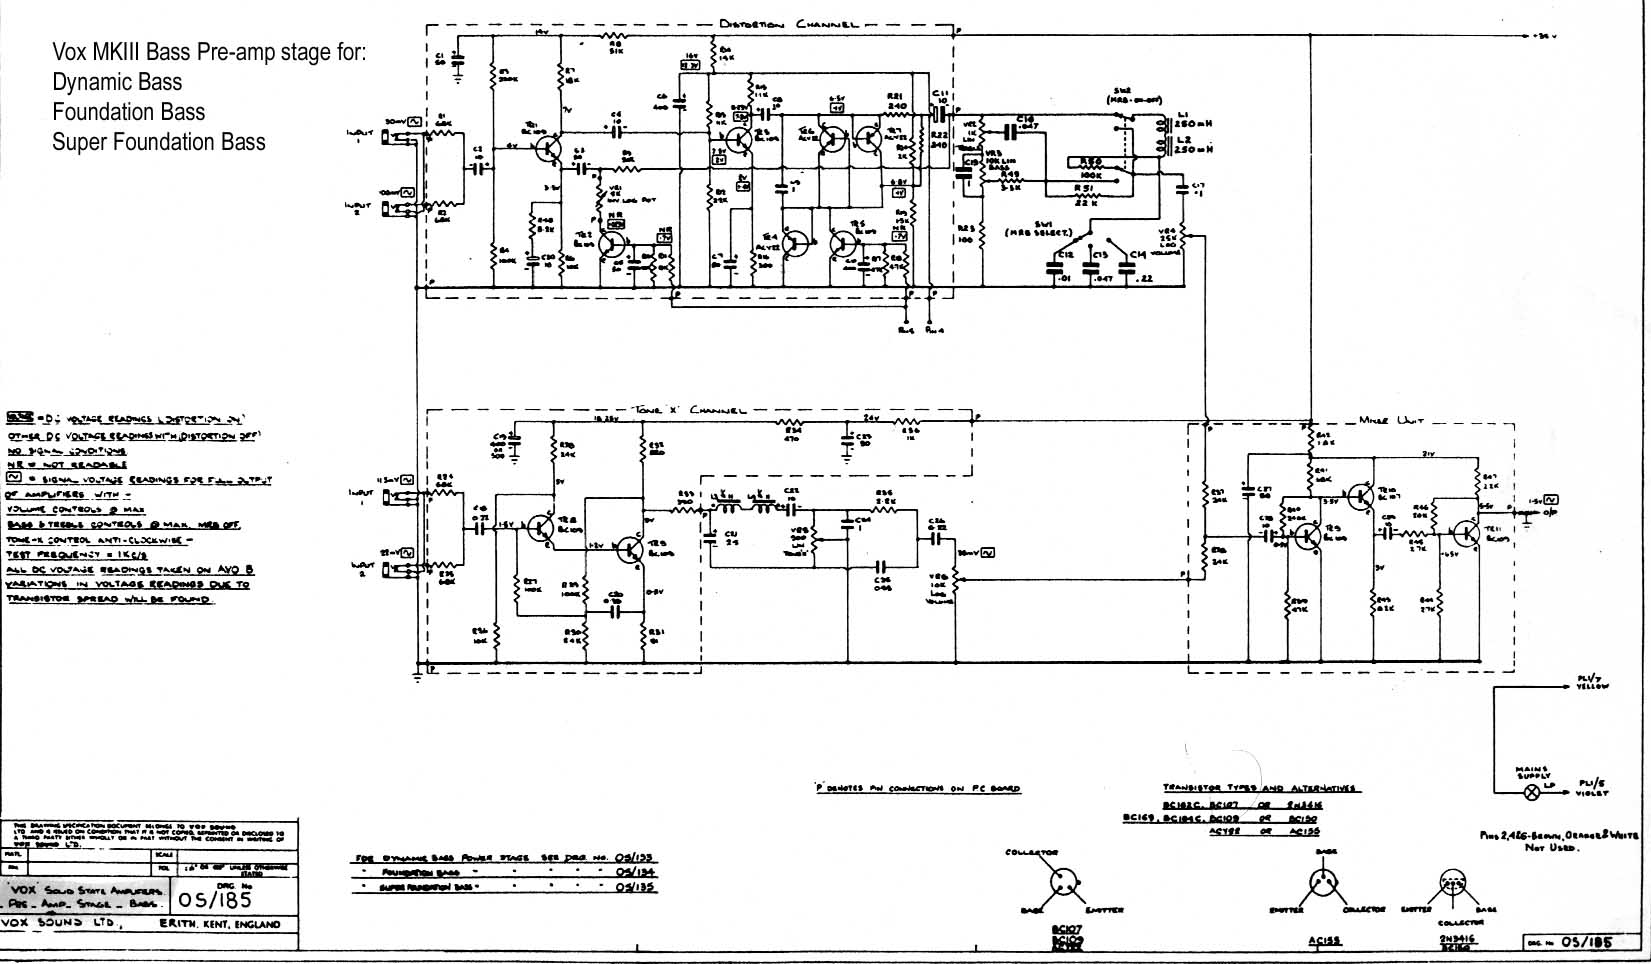 vsl_b_preamp Ups Schematics And Diagrams on ups wiring diagram, ups block diagram, apc ups diagram, electrical system diagram, how ups works diagram, ups cable diagram, led wiring diagram, circuit diagram, ac to dc converter diagram, exploded diagram, ups installation diagram, ups transformer diagram, smps diagram, as is to be diagram, 3 wire wiring diagram, ups pcb diagram, ups power diagram, ups backup diagram, ups inverter diagram, ups line diagram,